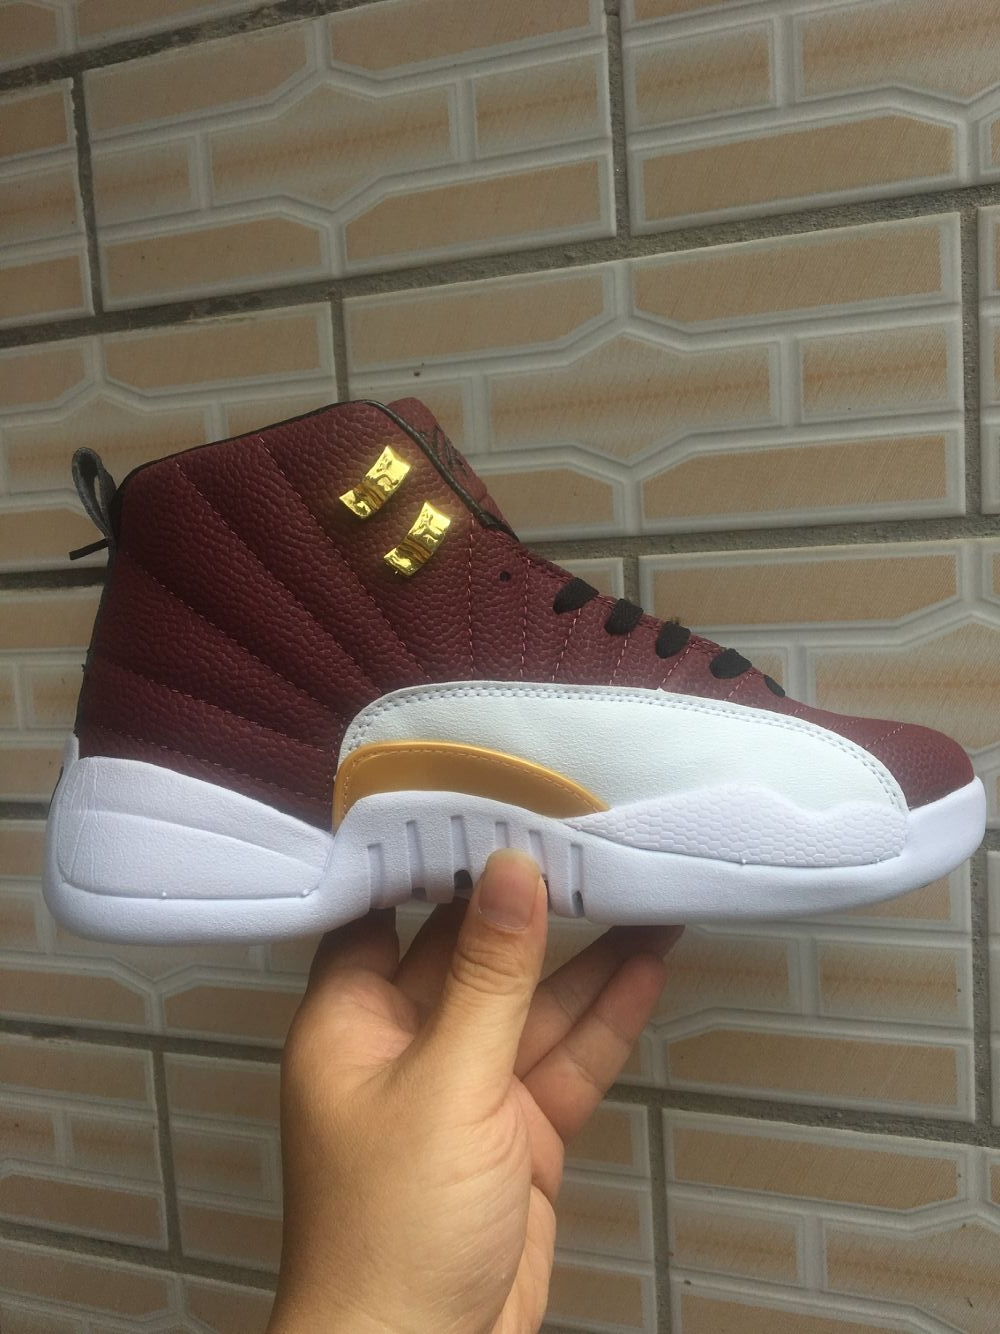 2019 Cheap Air Jordan Retro 12 Sneakers For Men in 211578, cheap Jordan12, only $65!